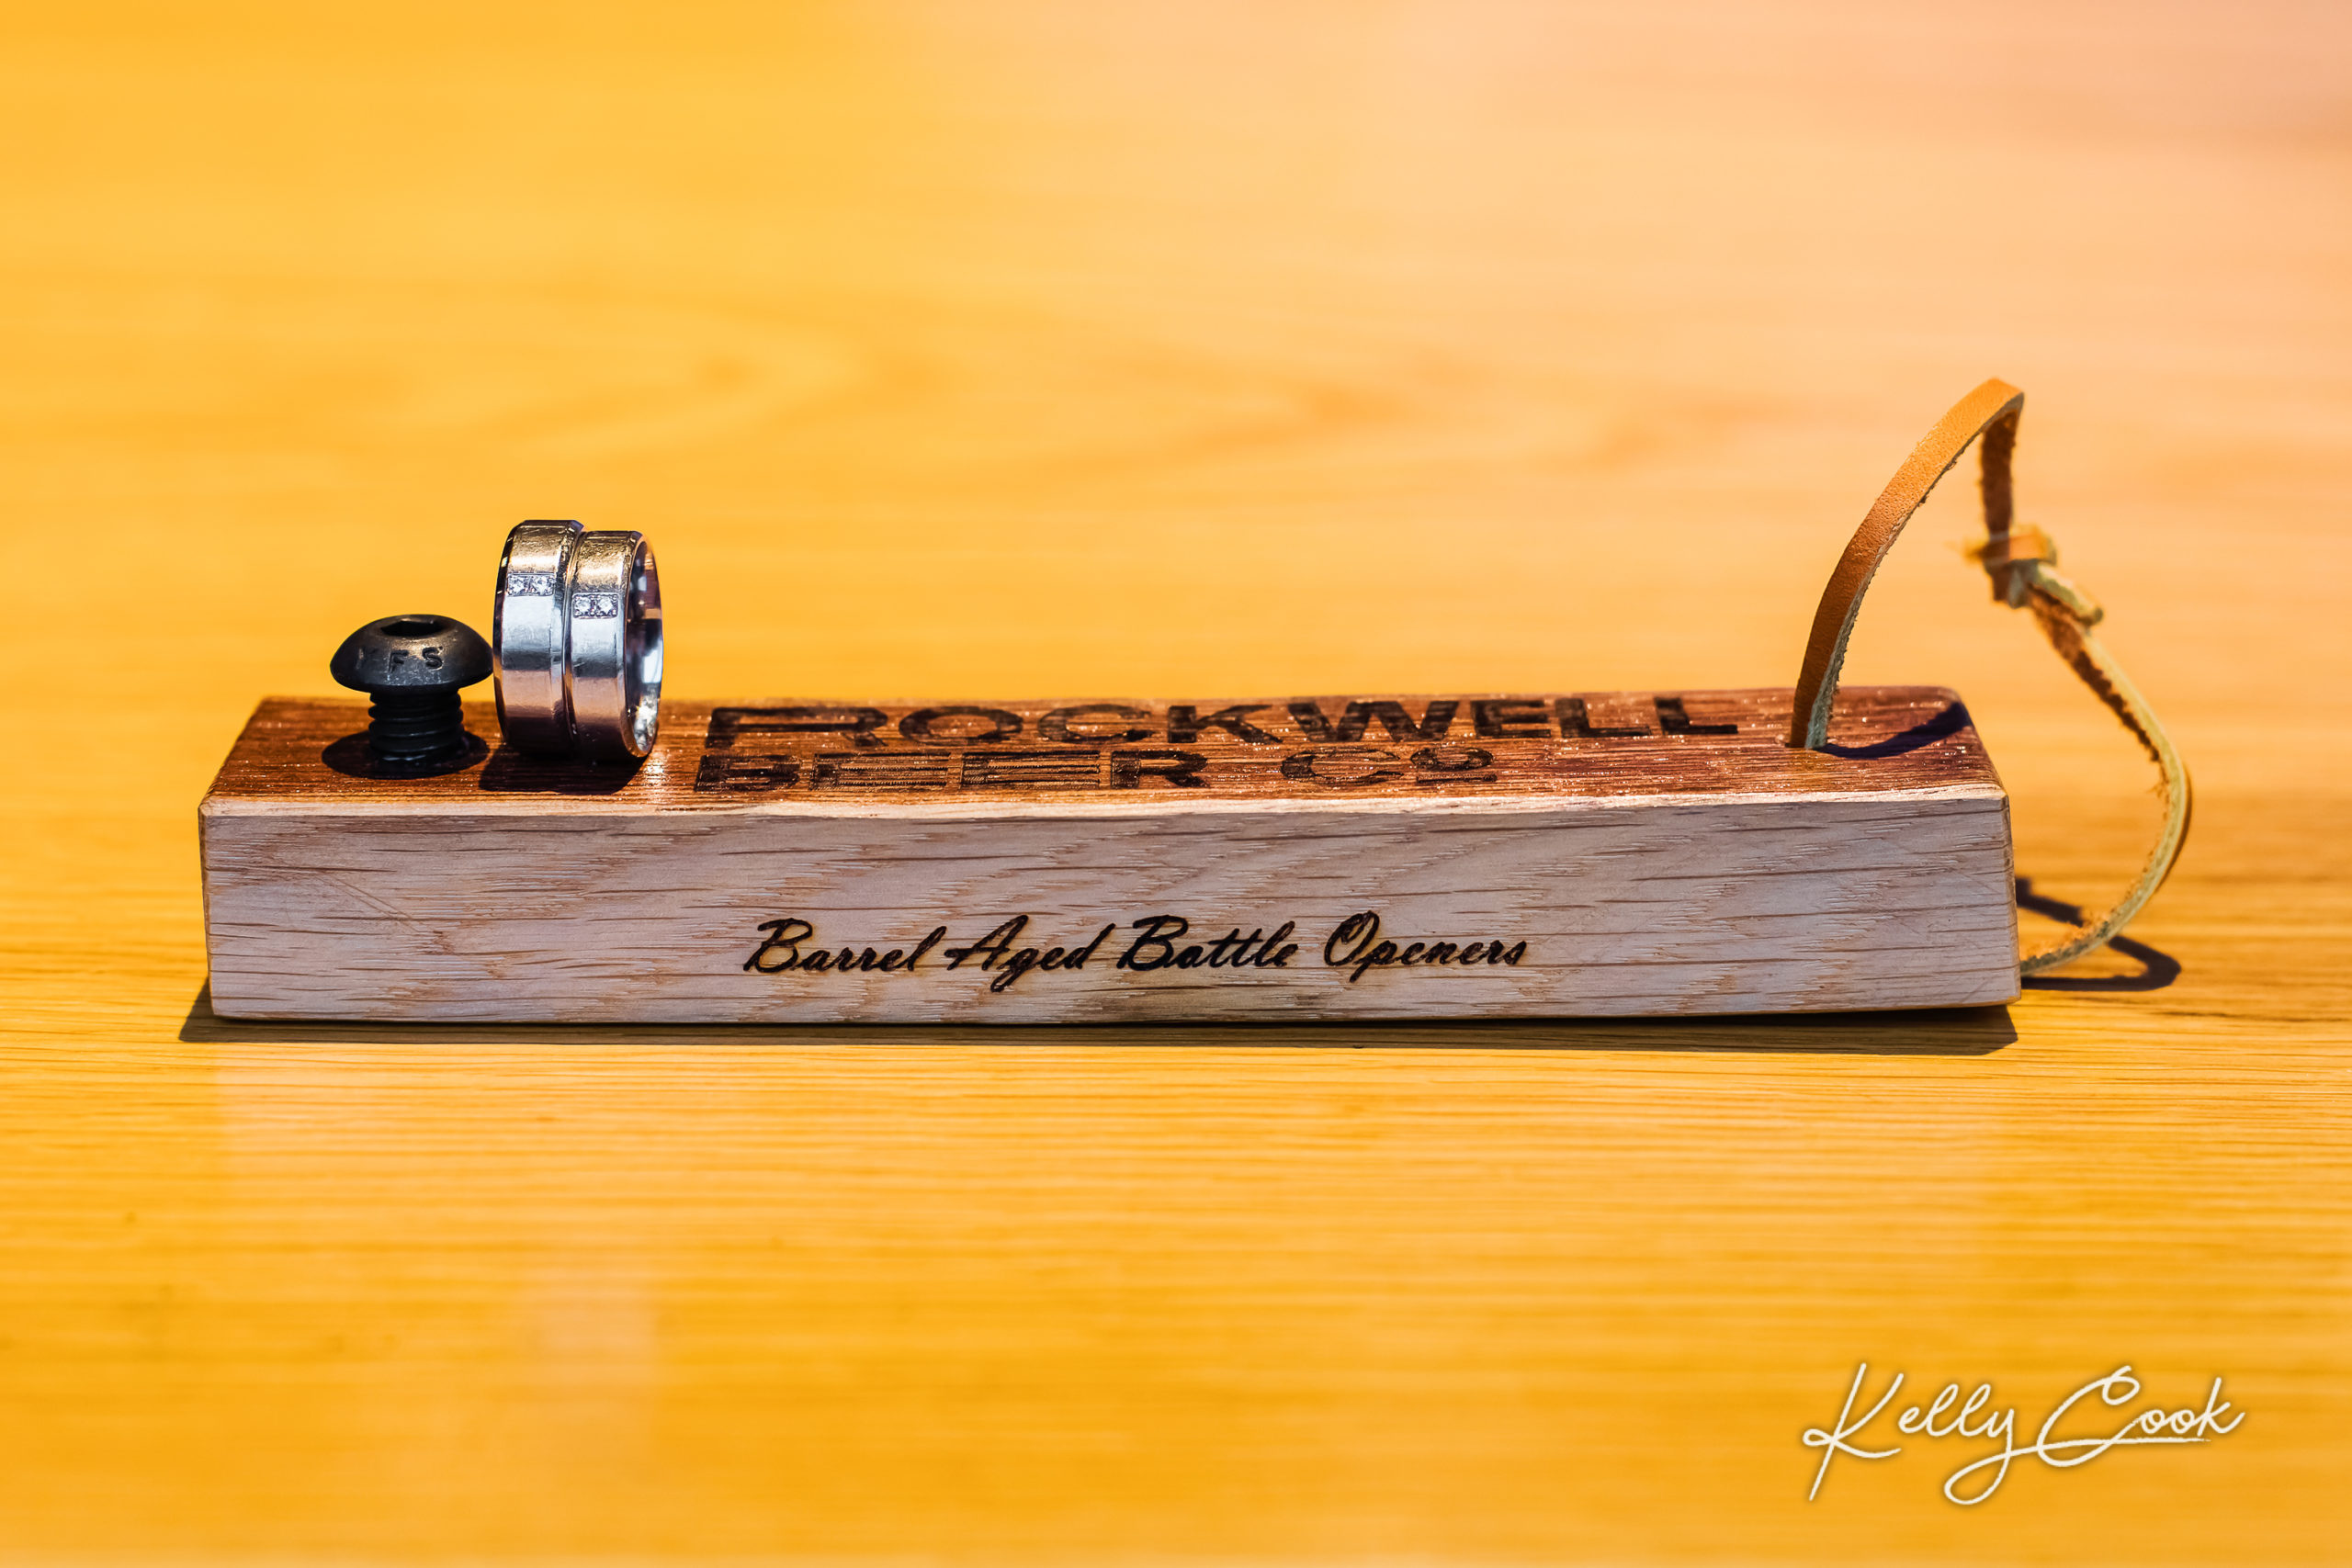 Engagement photo of rings on a brewery bottle opener